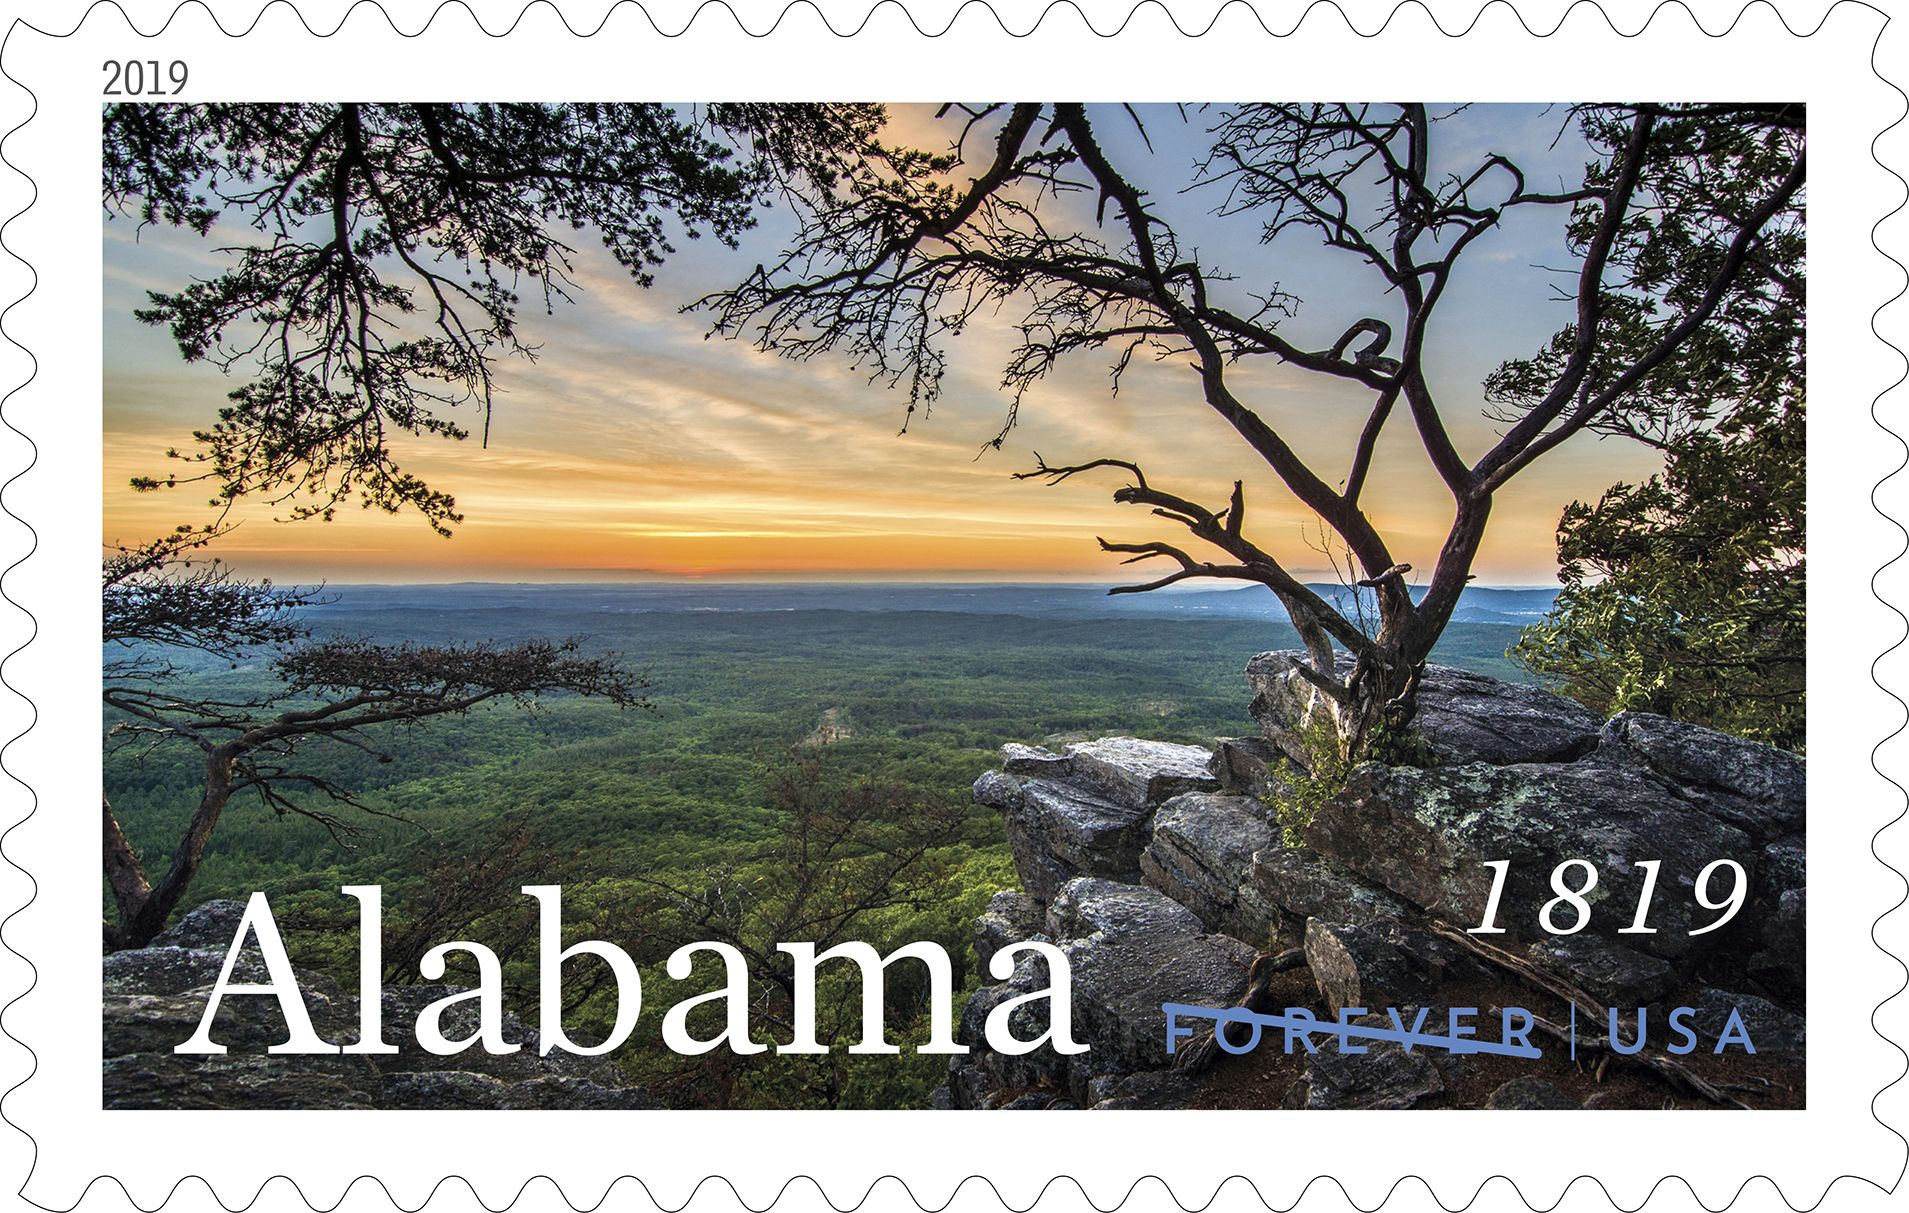 Alabama Statehood - February 23, 2019